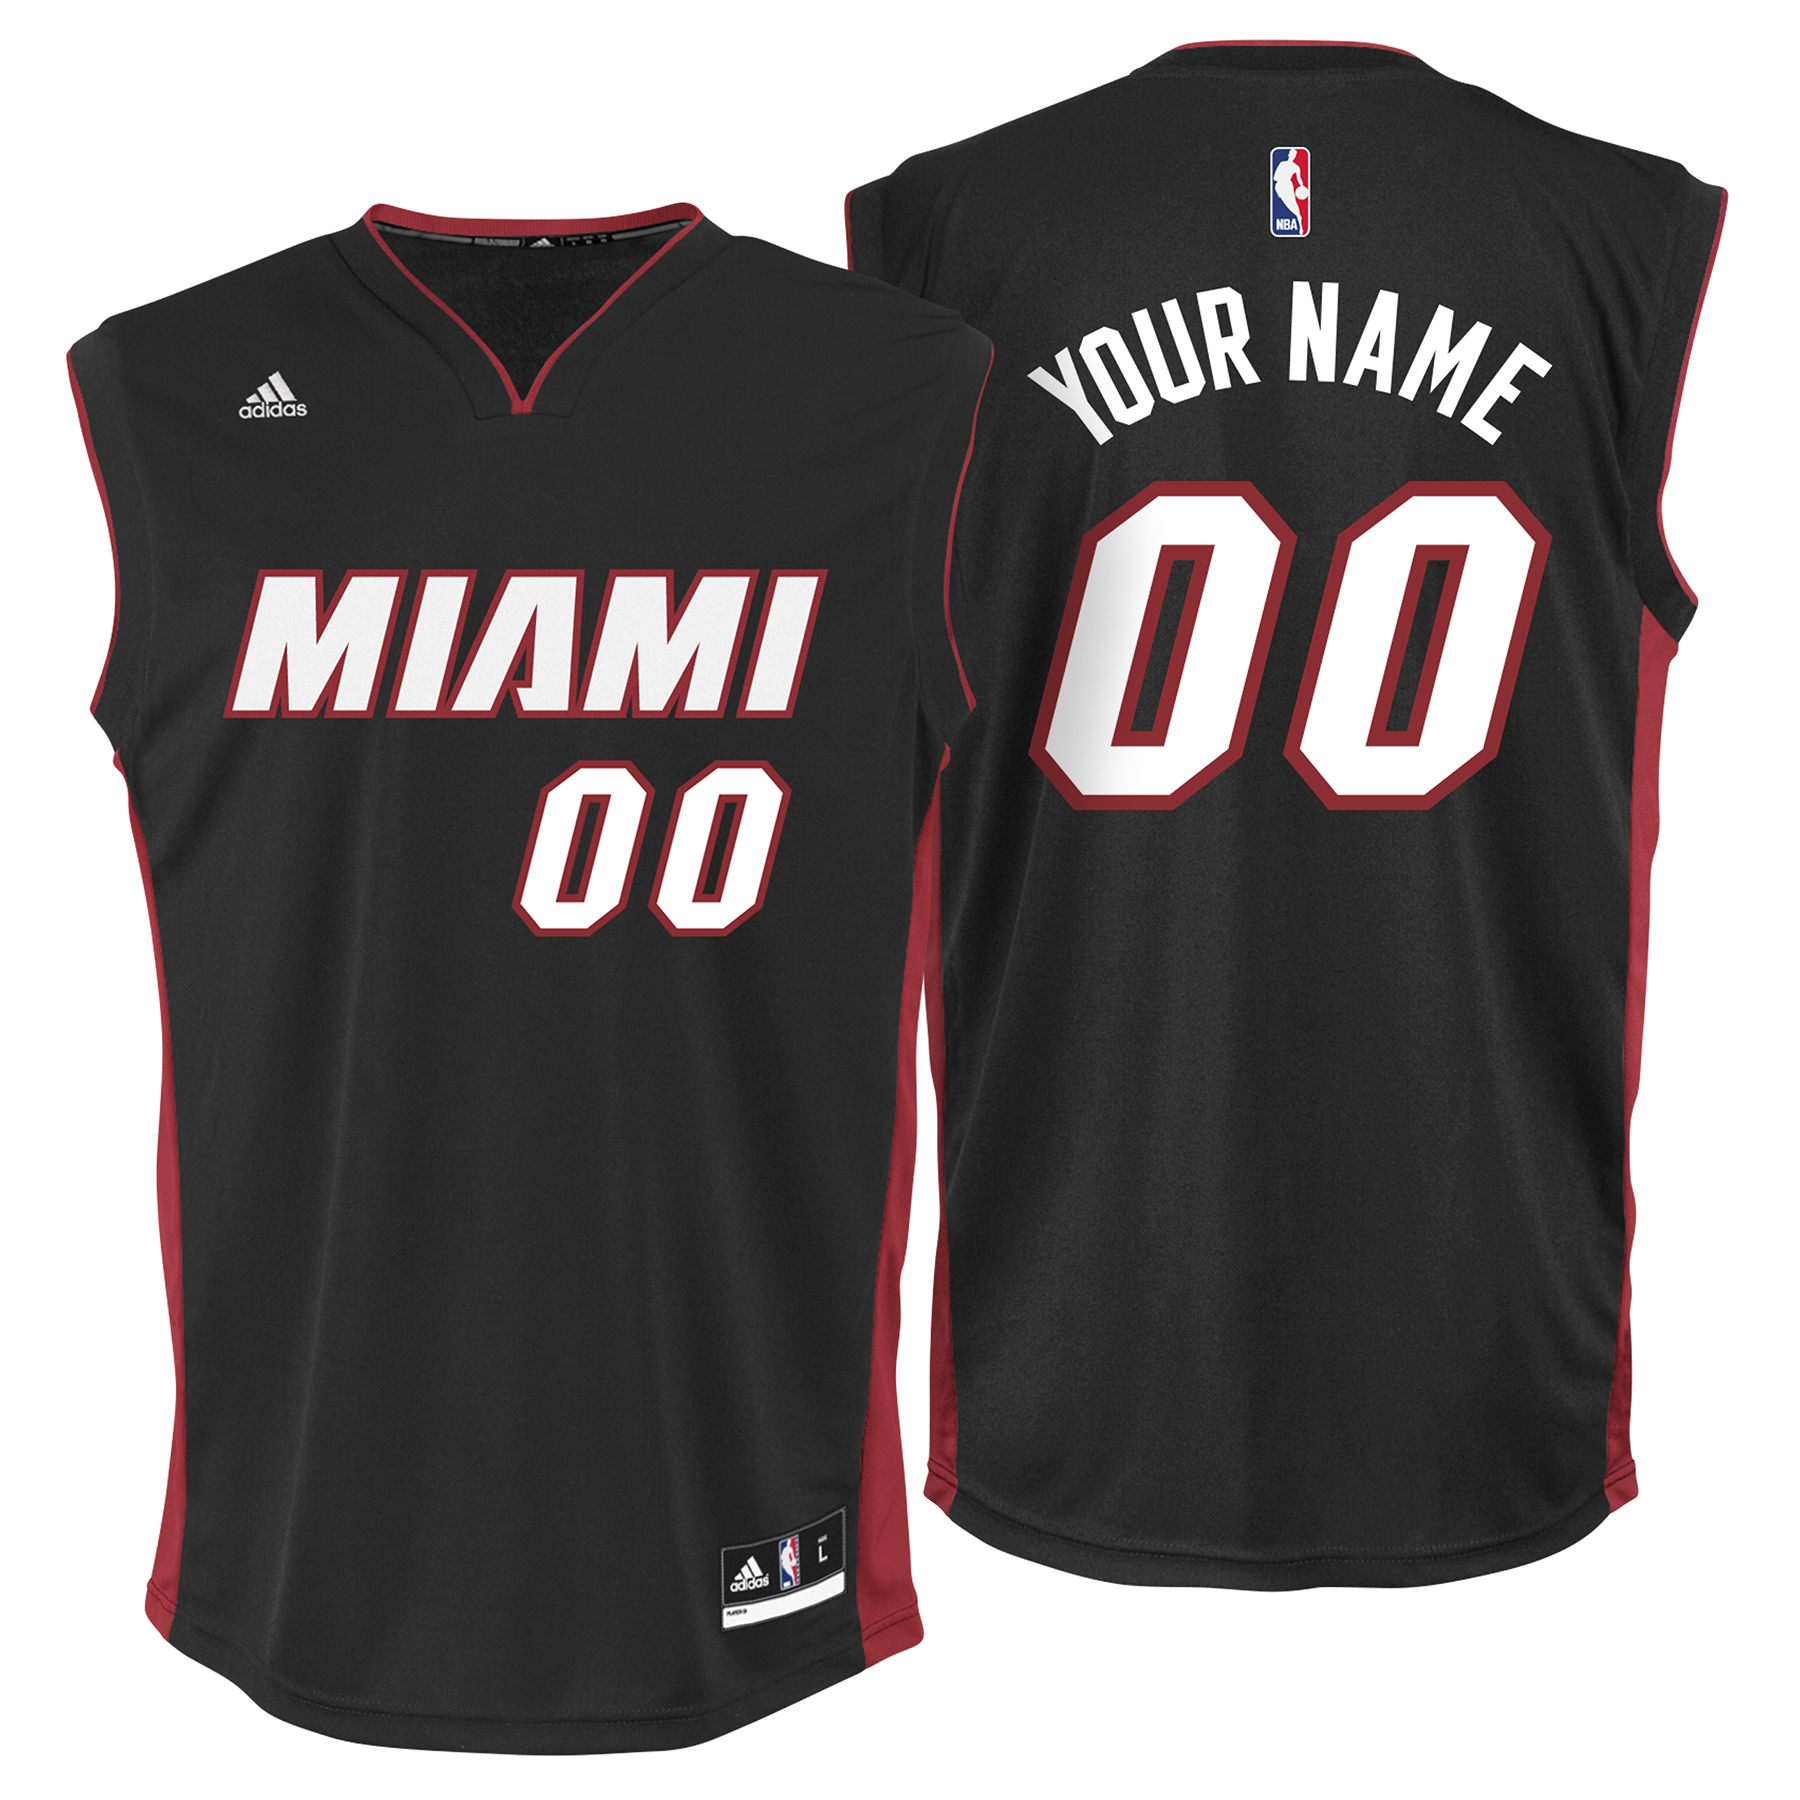 Miami Heat Road Replica Jersey -Custom - Mens